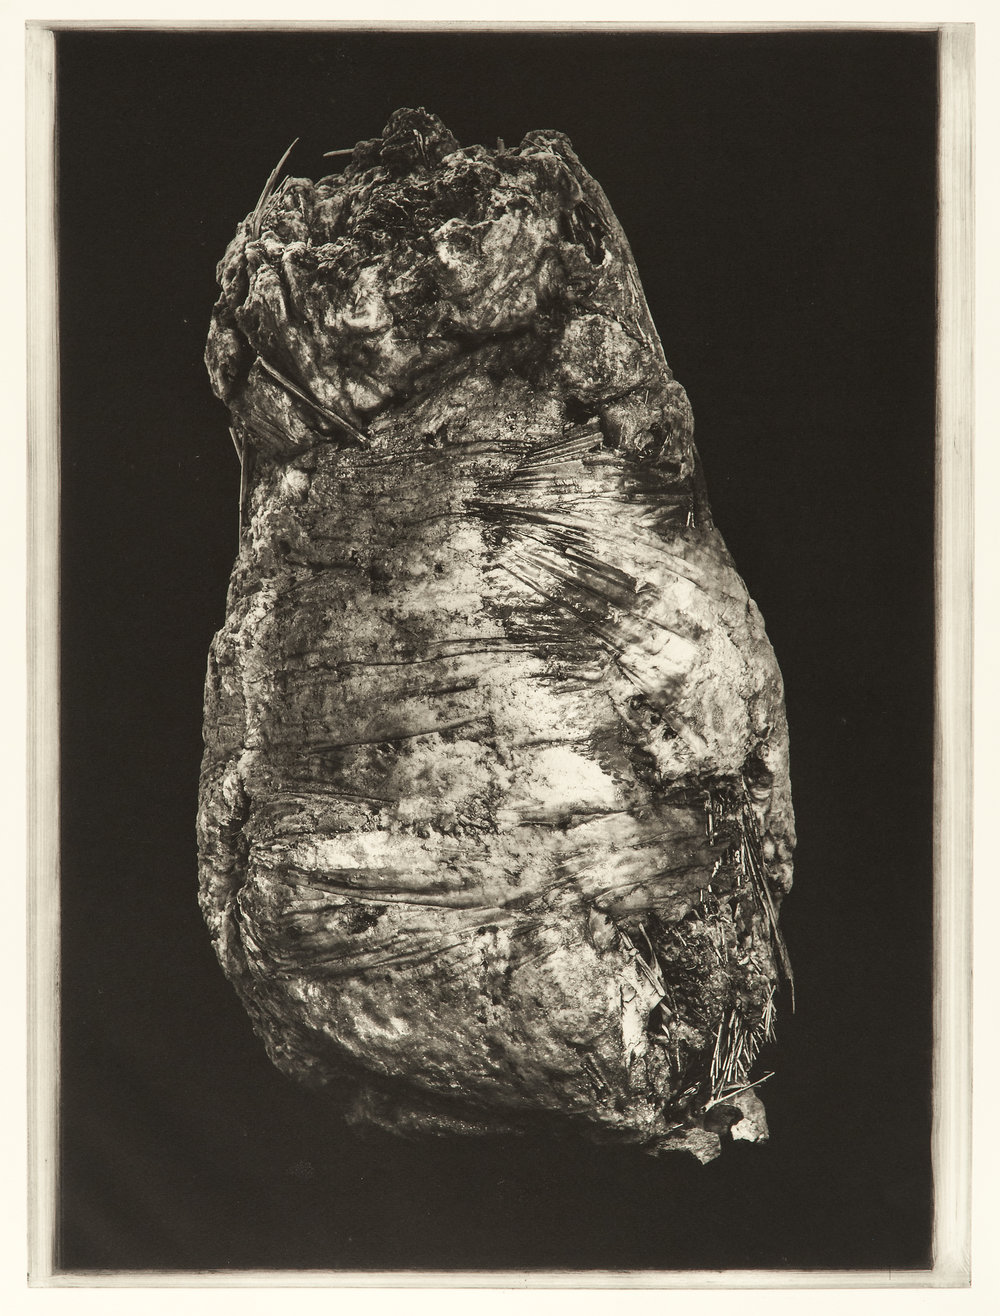 """Degeneration # 4475"", 22"" x 30"", photogravure of urethane sculpture weathered"